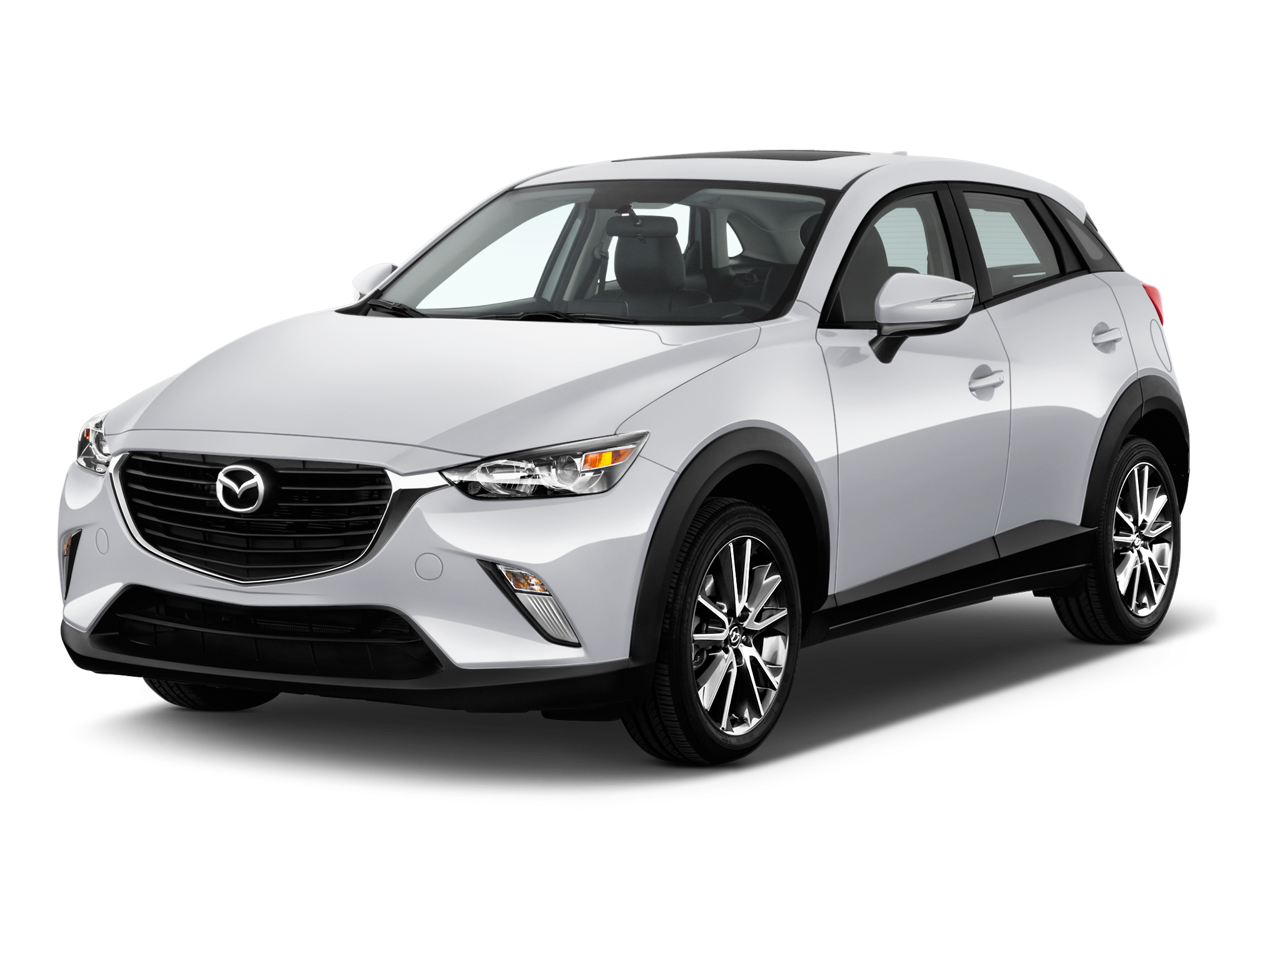 new 2017 mazda cx 3 grand touring near augusta ga. Black Bedroom Furniture Sets. Home Design Ideas